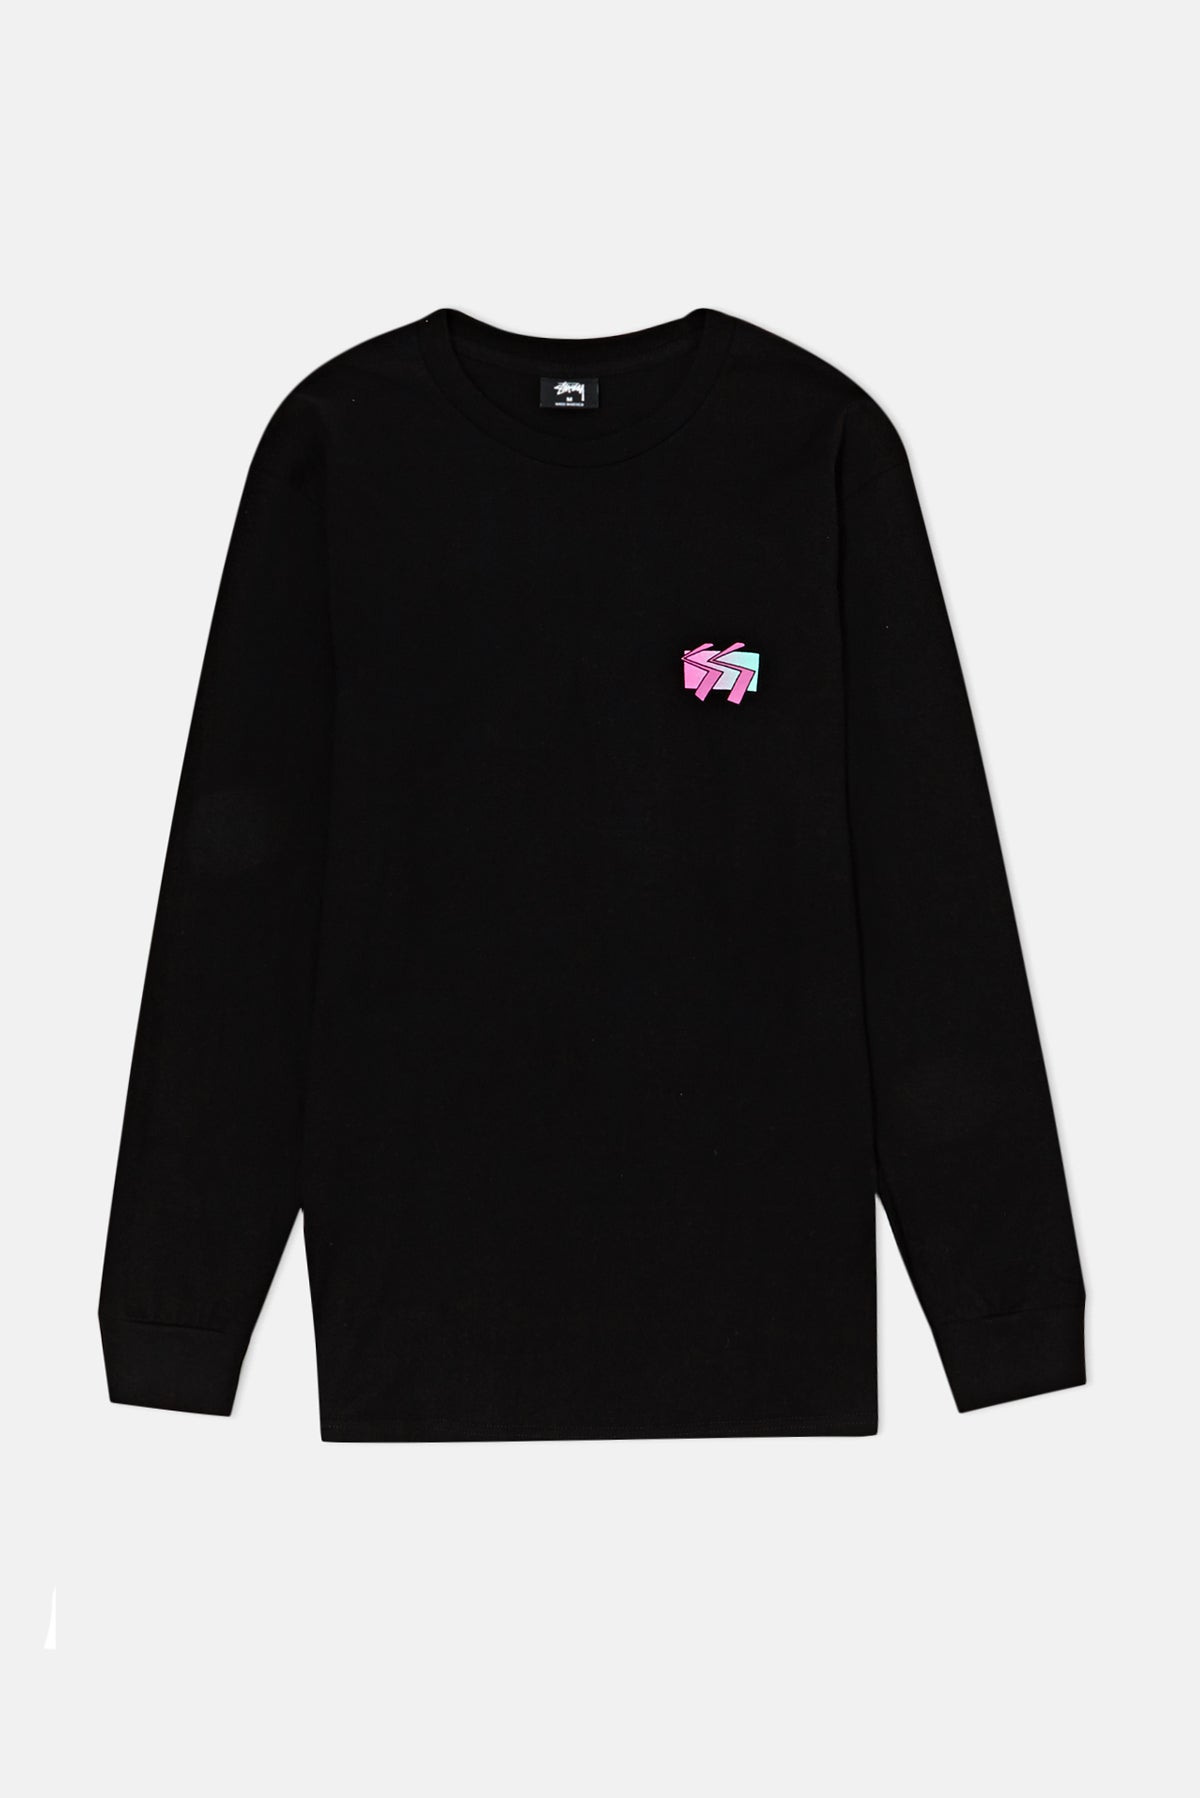 fef6ac931 Stussy Cube L S T-Shirt available from Priory